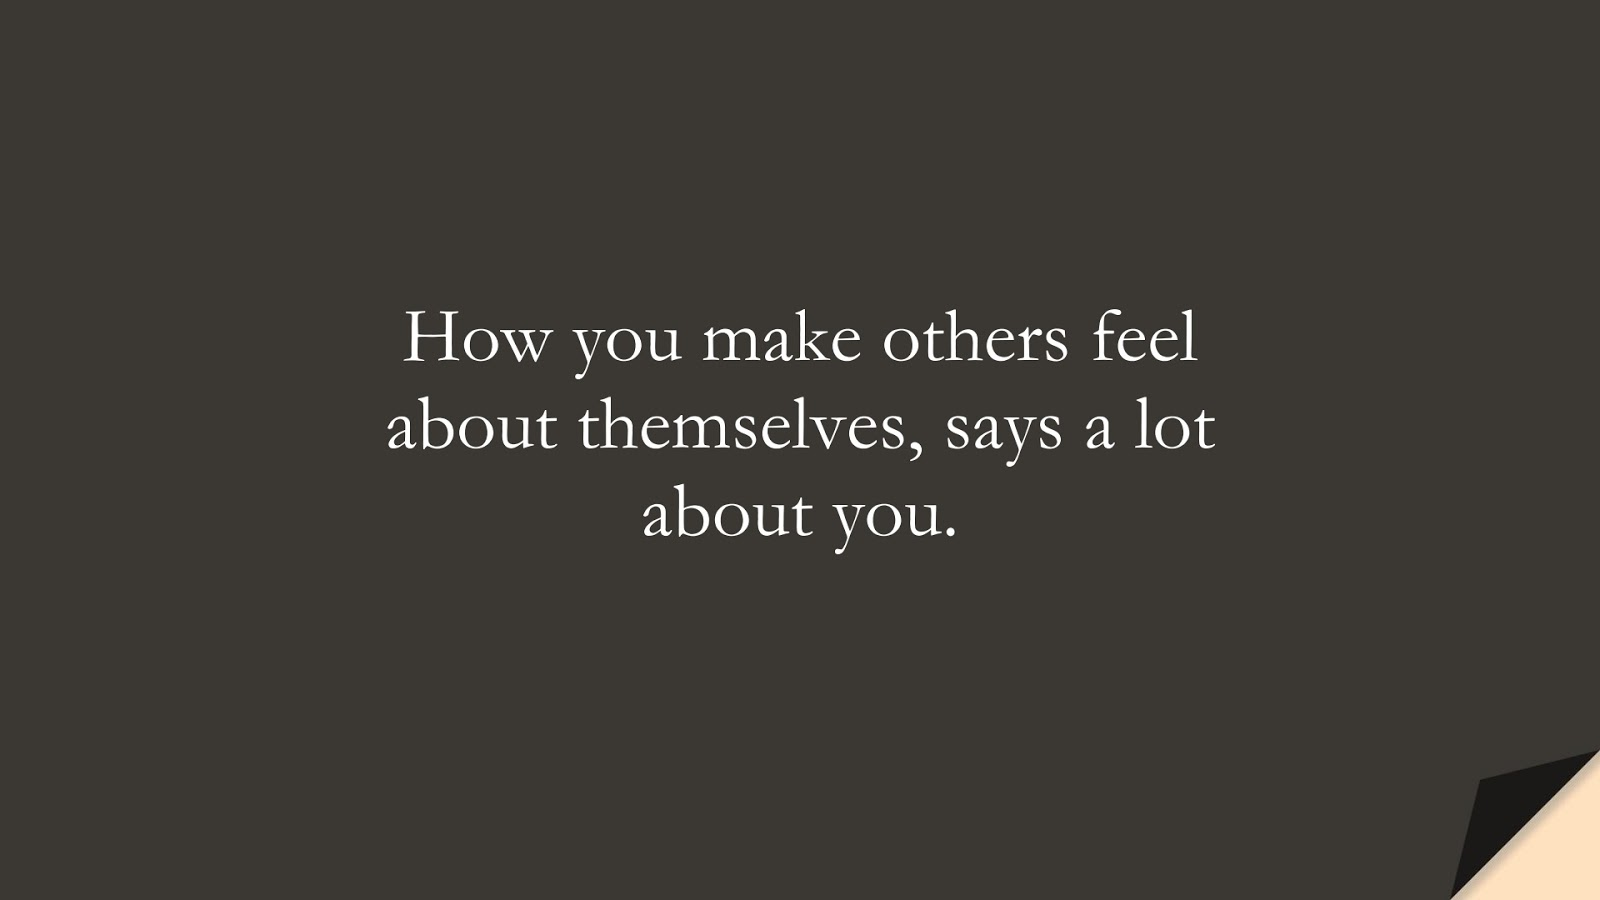 How you make others feel about themselves, says a lot about you.FALSE